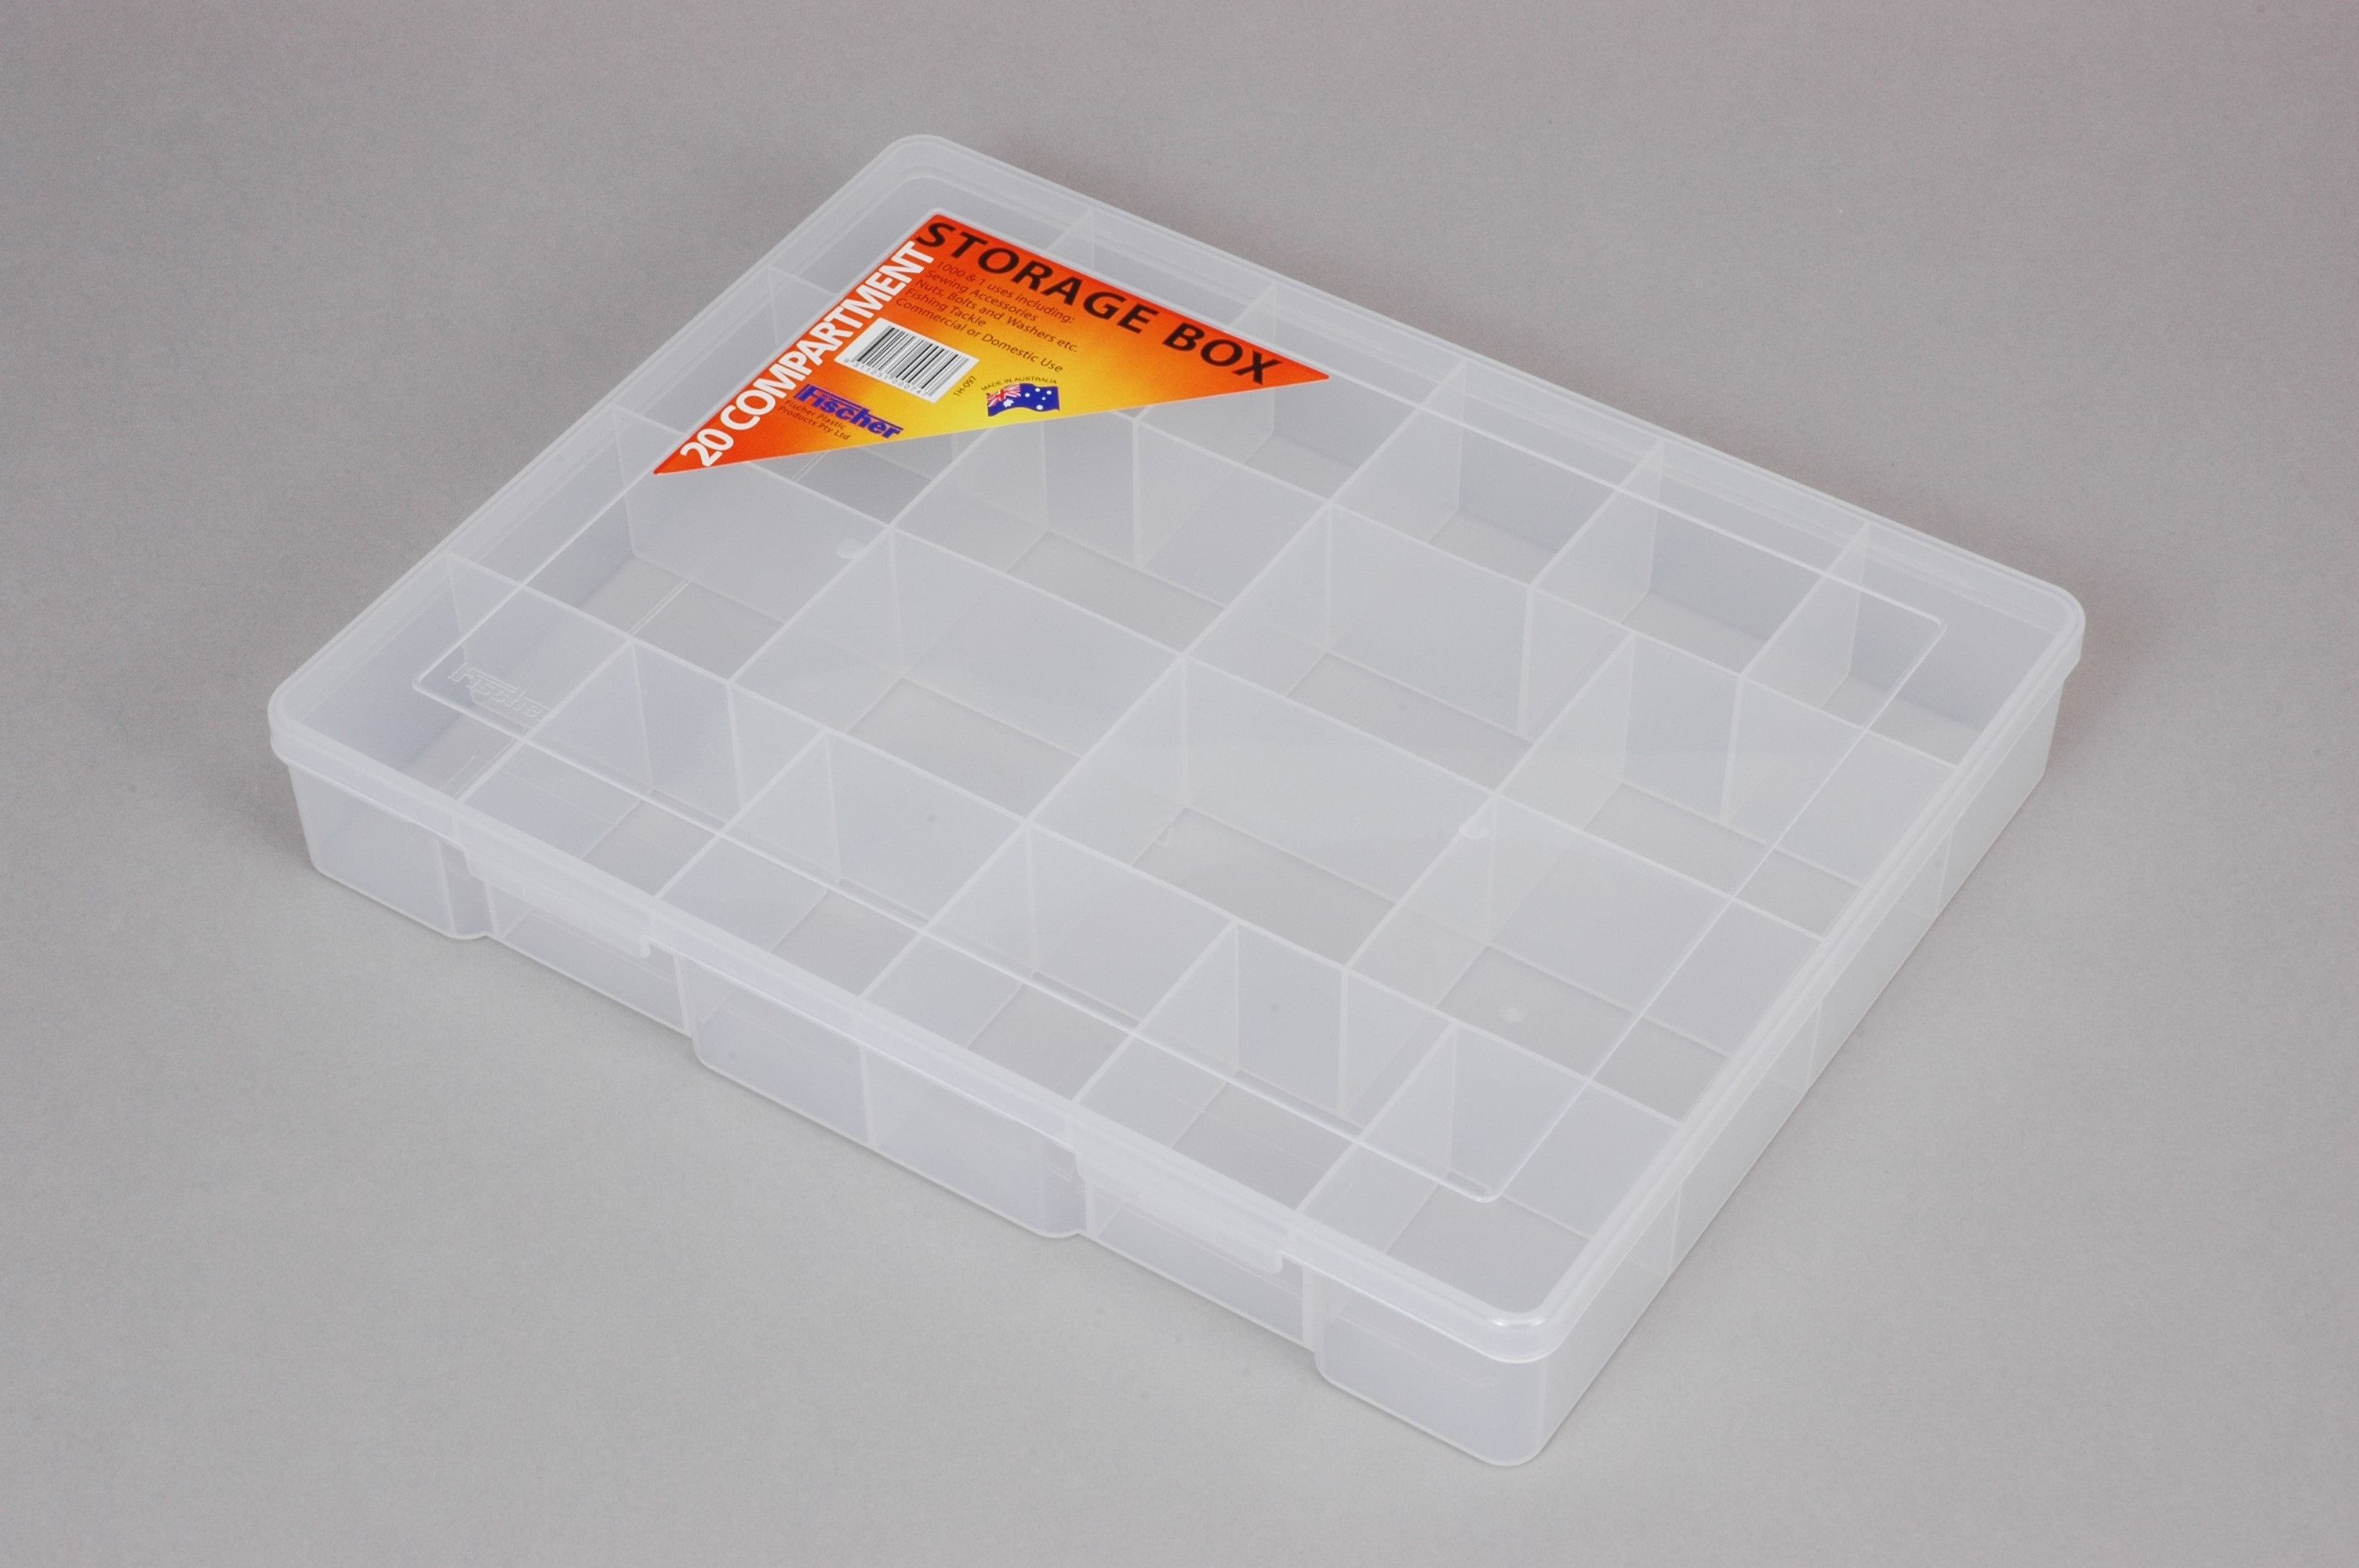 20 Compartment - Extra Large Storage Box